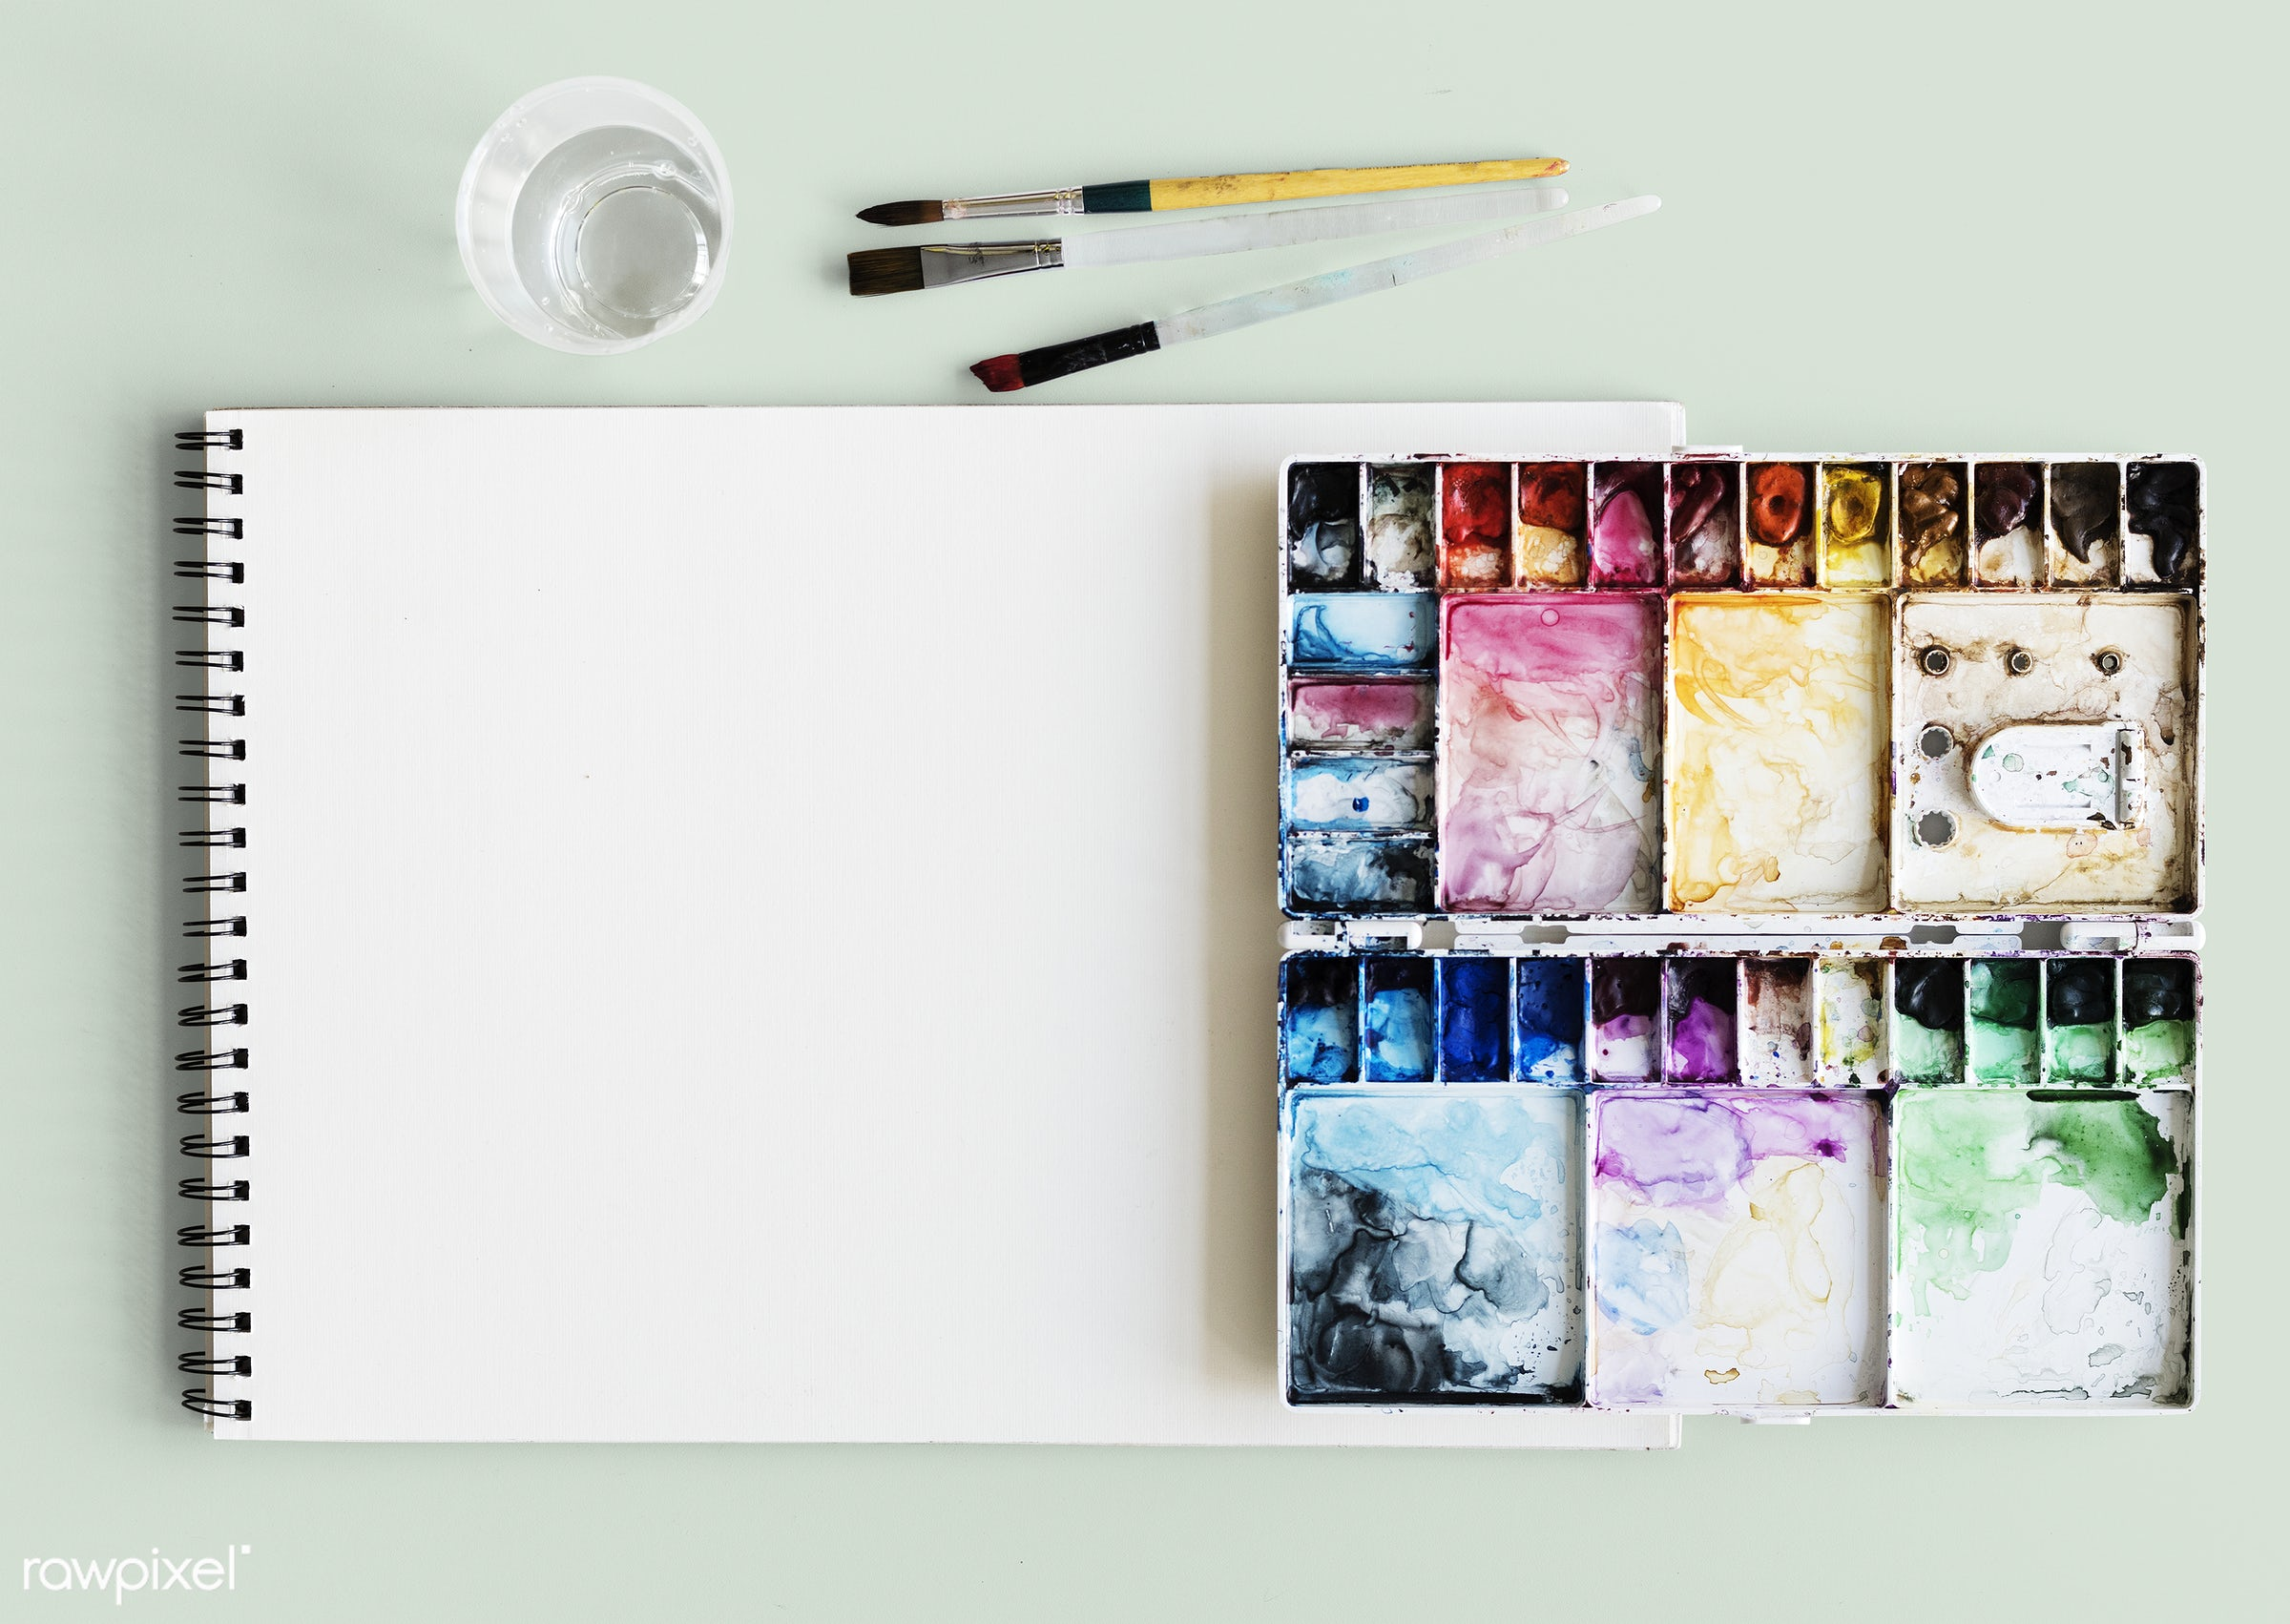 paintbrush, art, artwork, background, book, brush, color, colorful, craft, creativity, cup, design, draw, drawing, education...